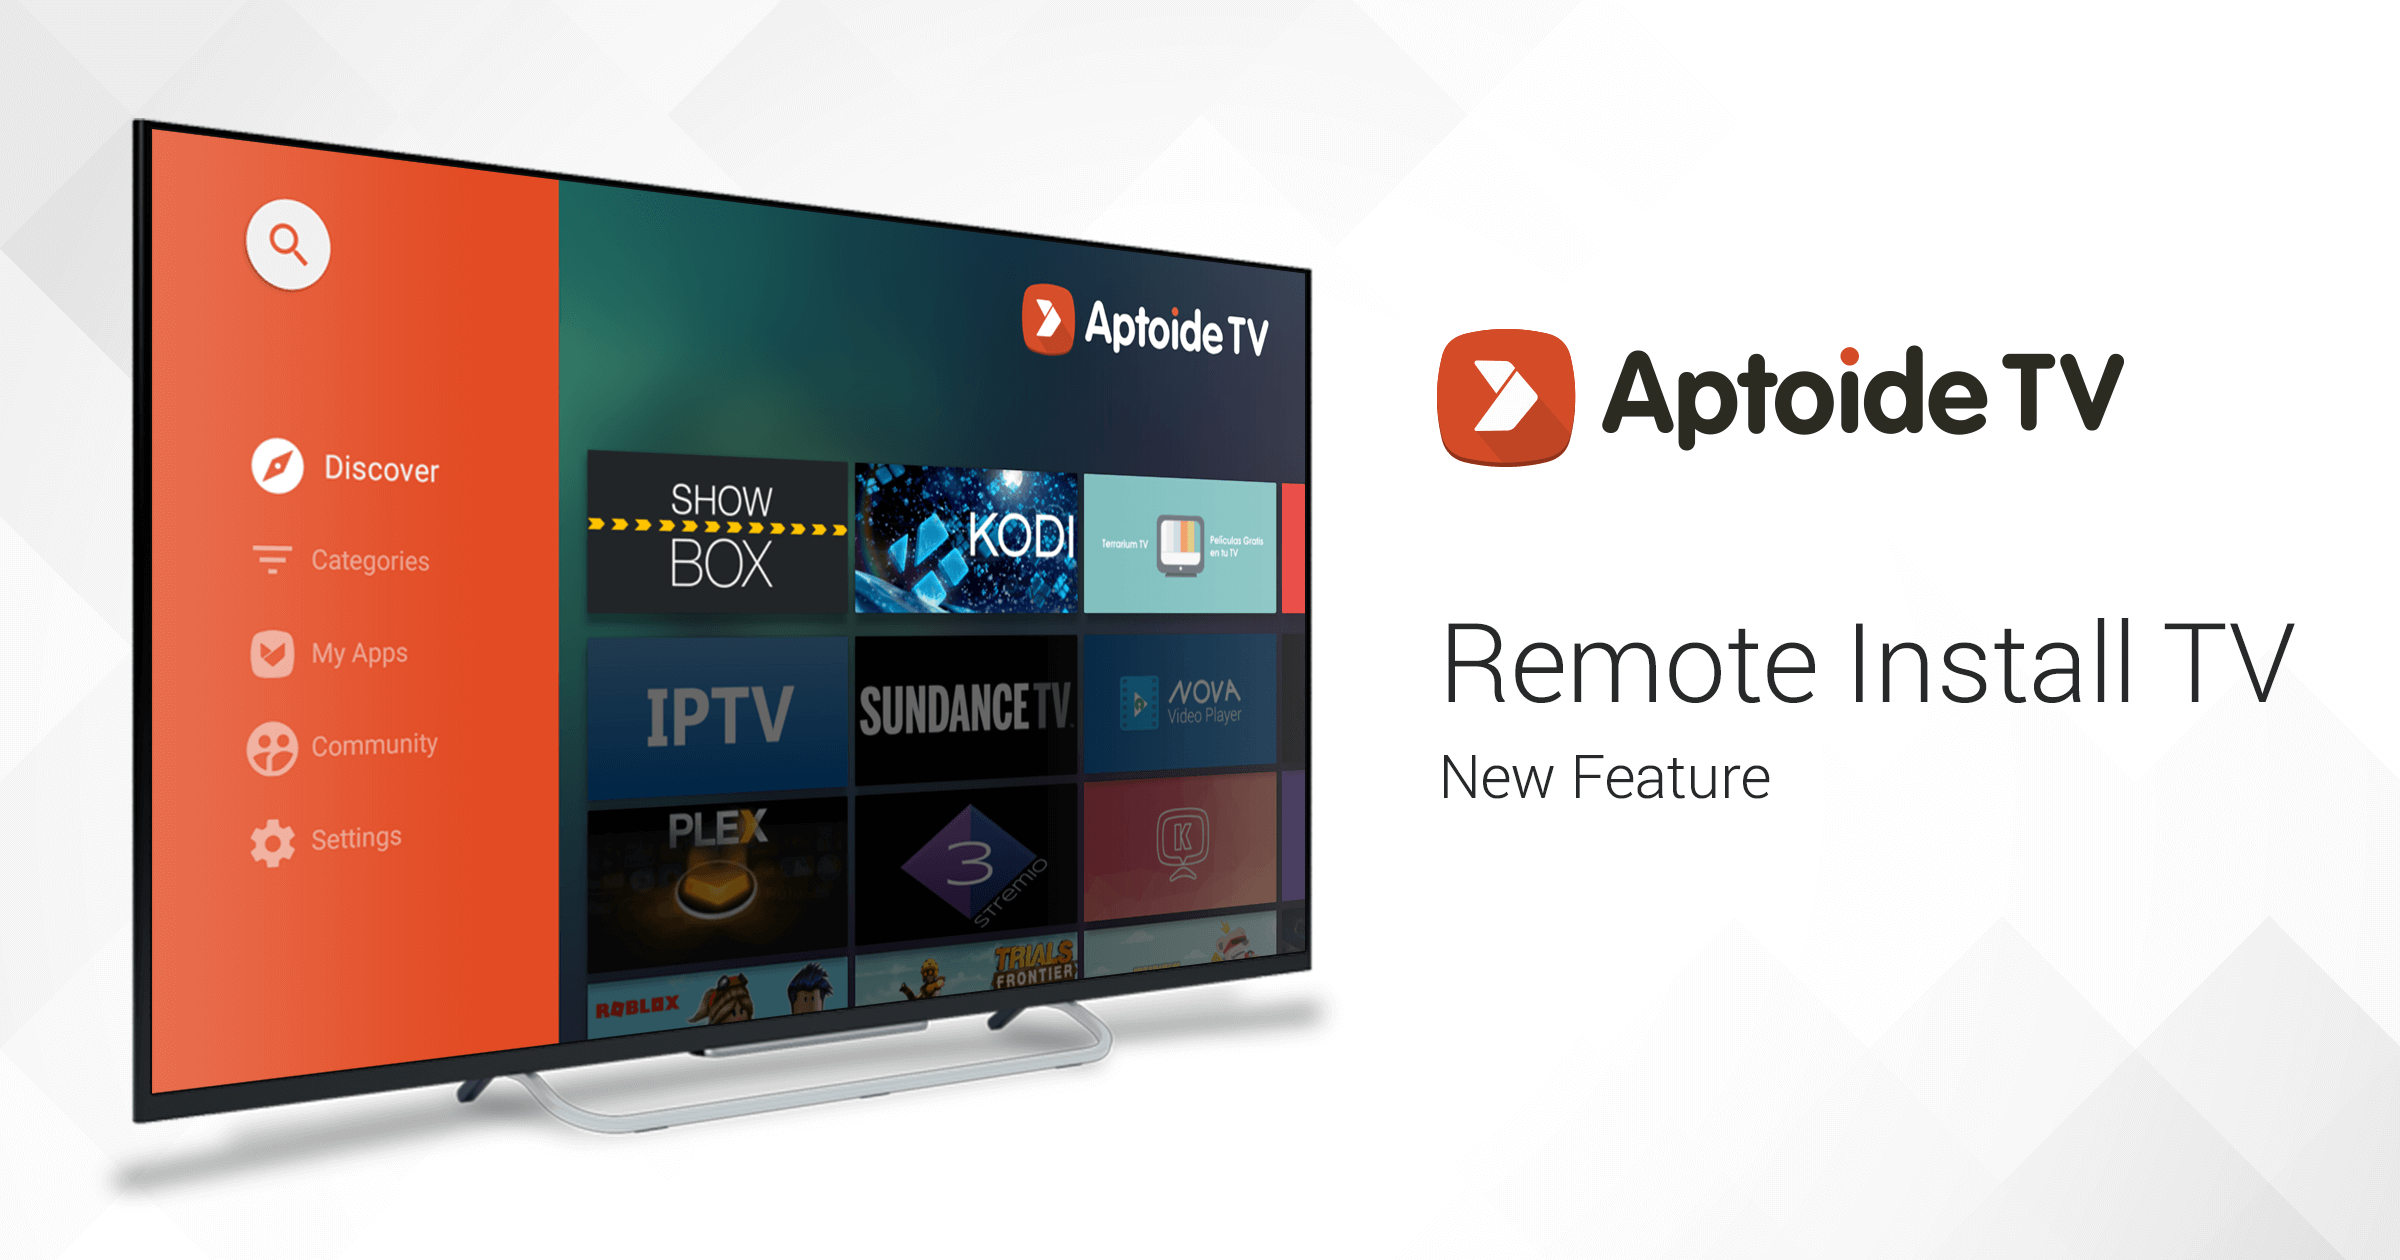 Install Apps On Your Android TV From Your Smartphone With AptoideTV - Updated!